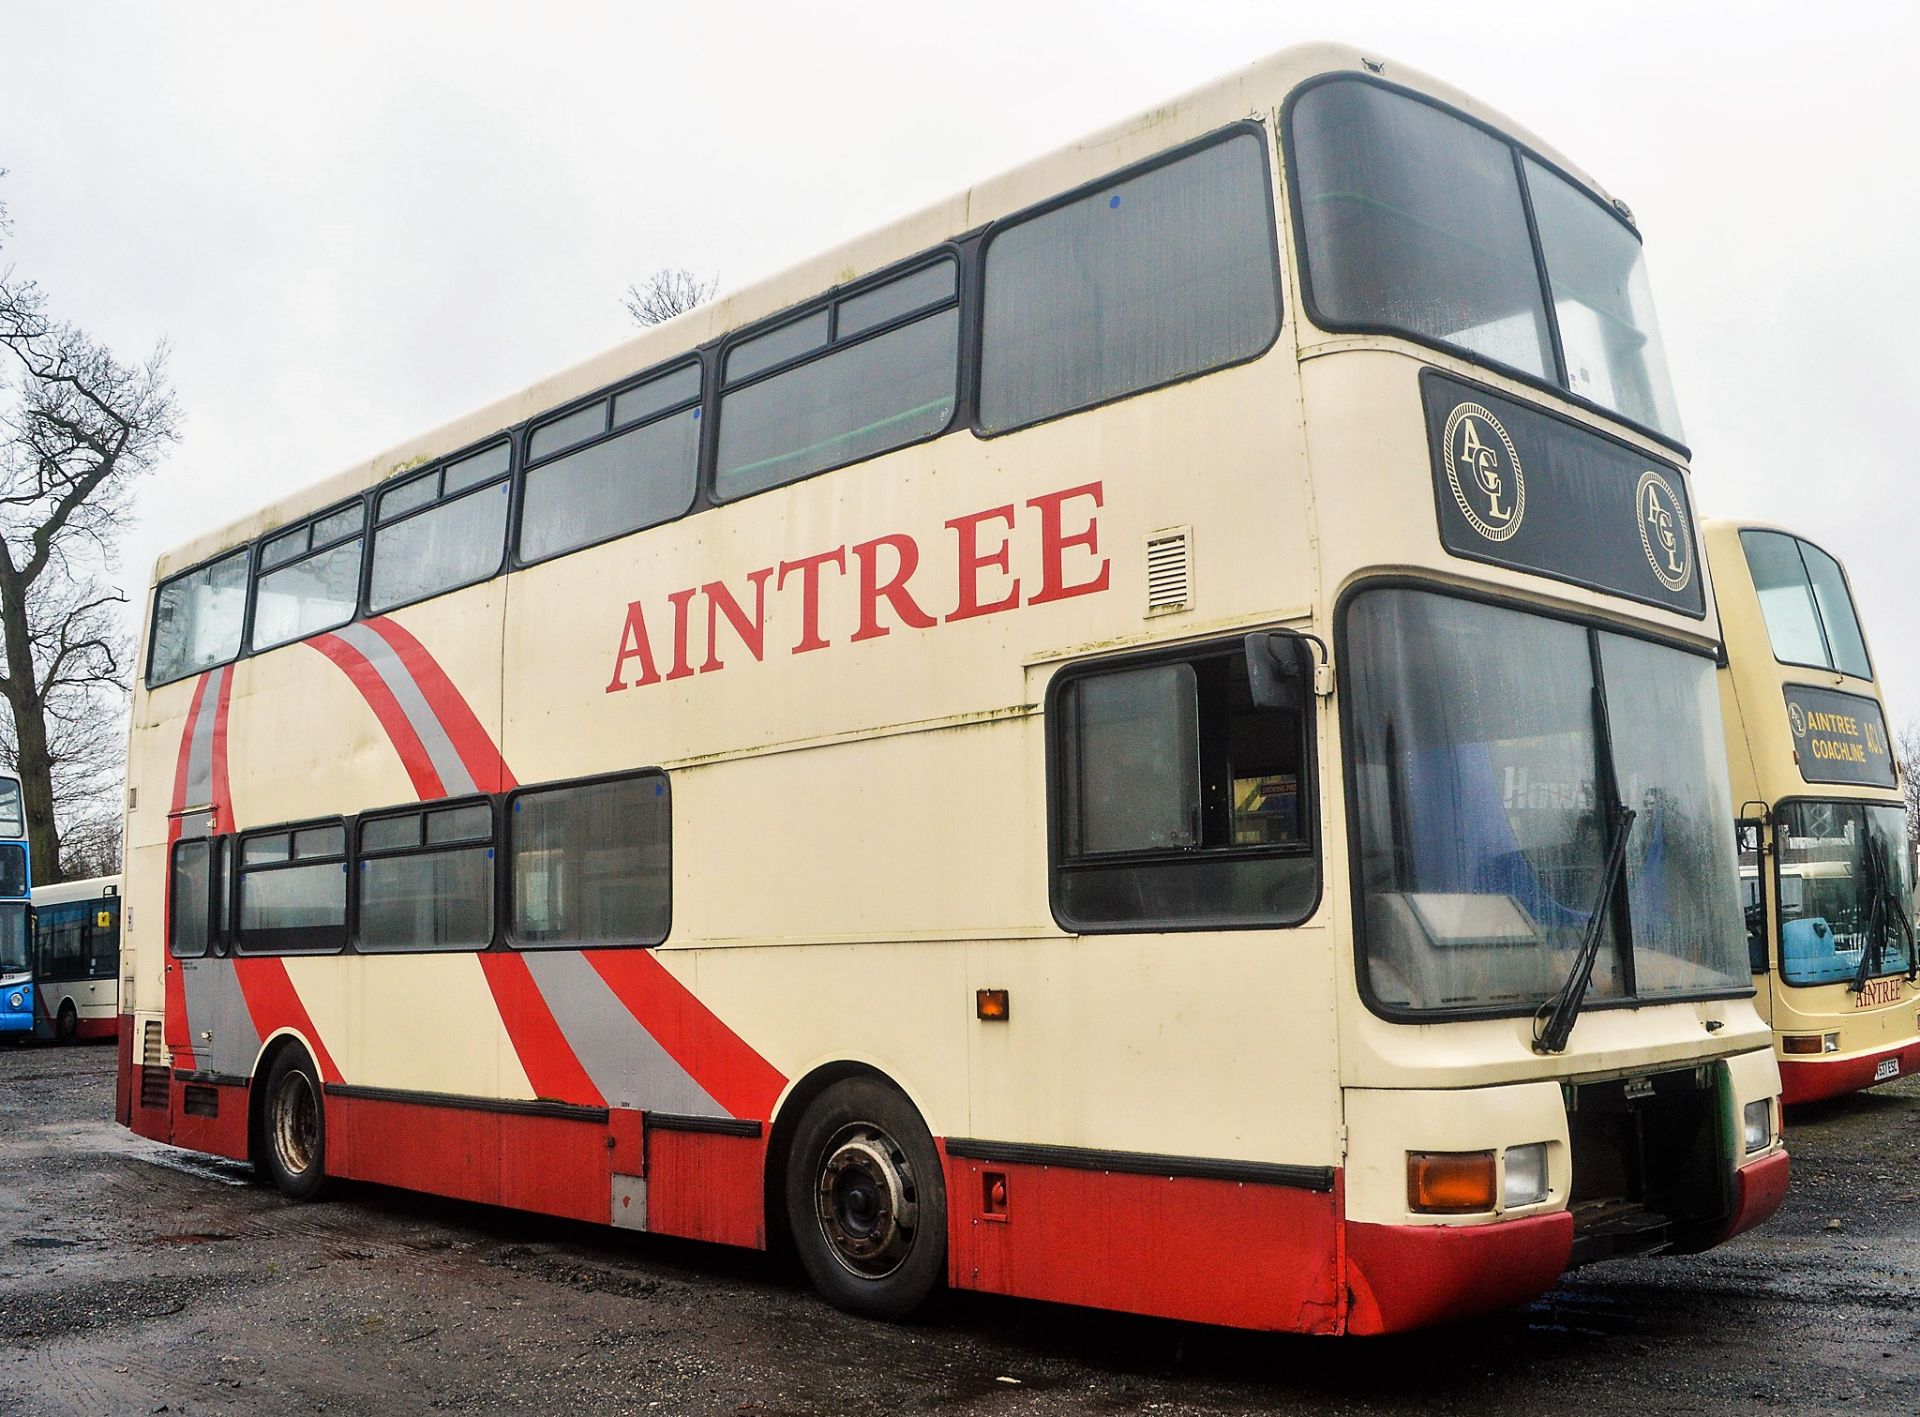 Lot 15 - Alexander Dennis double deck service bus for spares Registration Number: P5 ACL (Plate not sold with